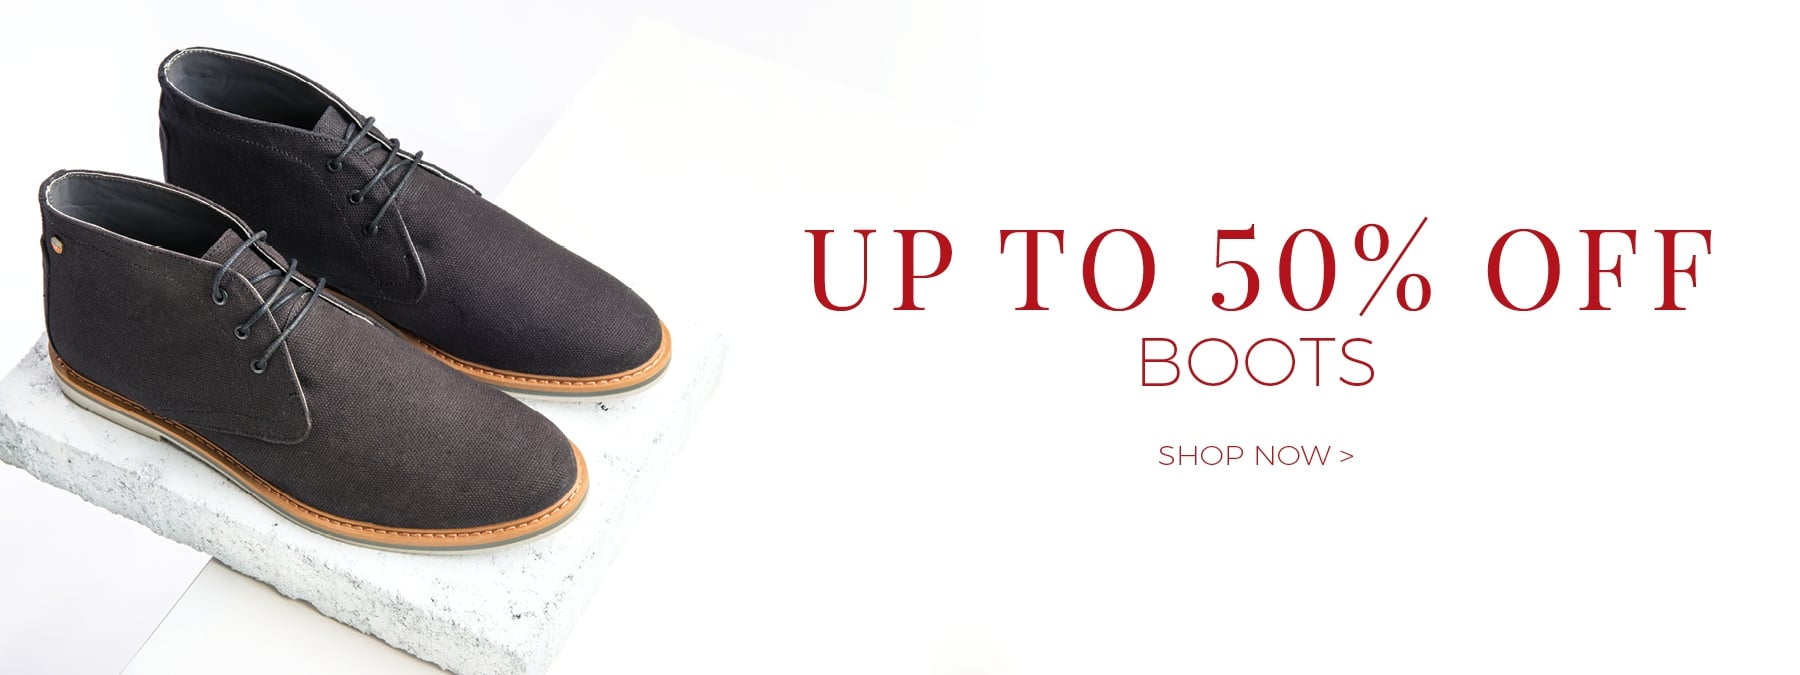 Boots sale email